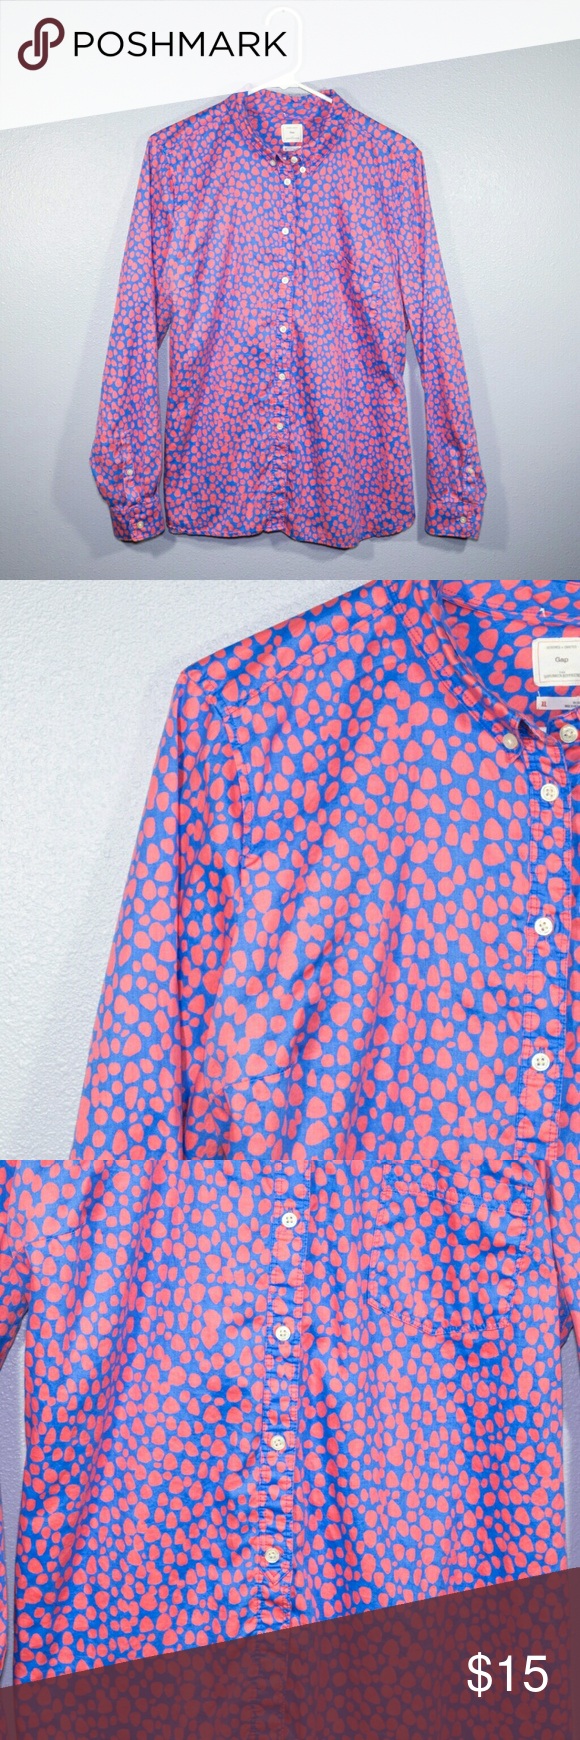 Gap Patterned Button Down I love the pattern on this Gap Button Up. This button is the shrunken boyfriend style. The colors are bright too. In like new condition. Add this to a bundle for a further discount. GAP Tops Button Down Shirts